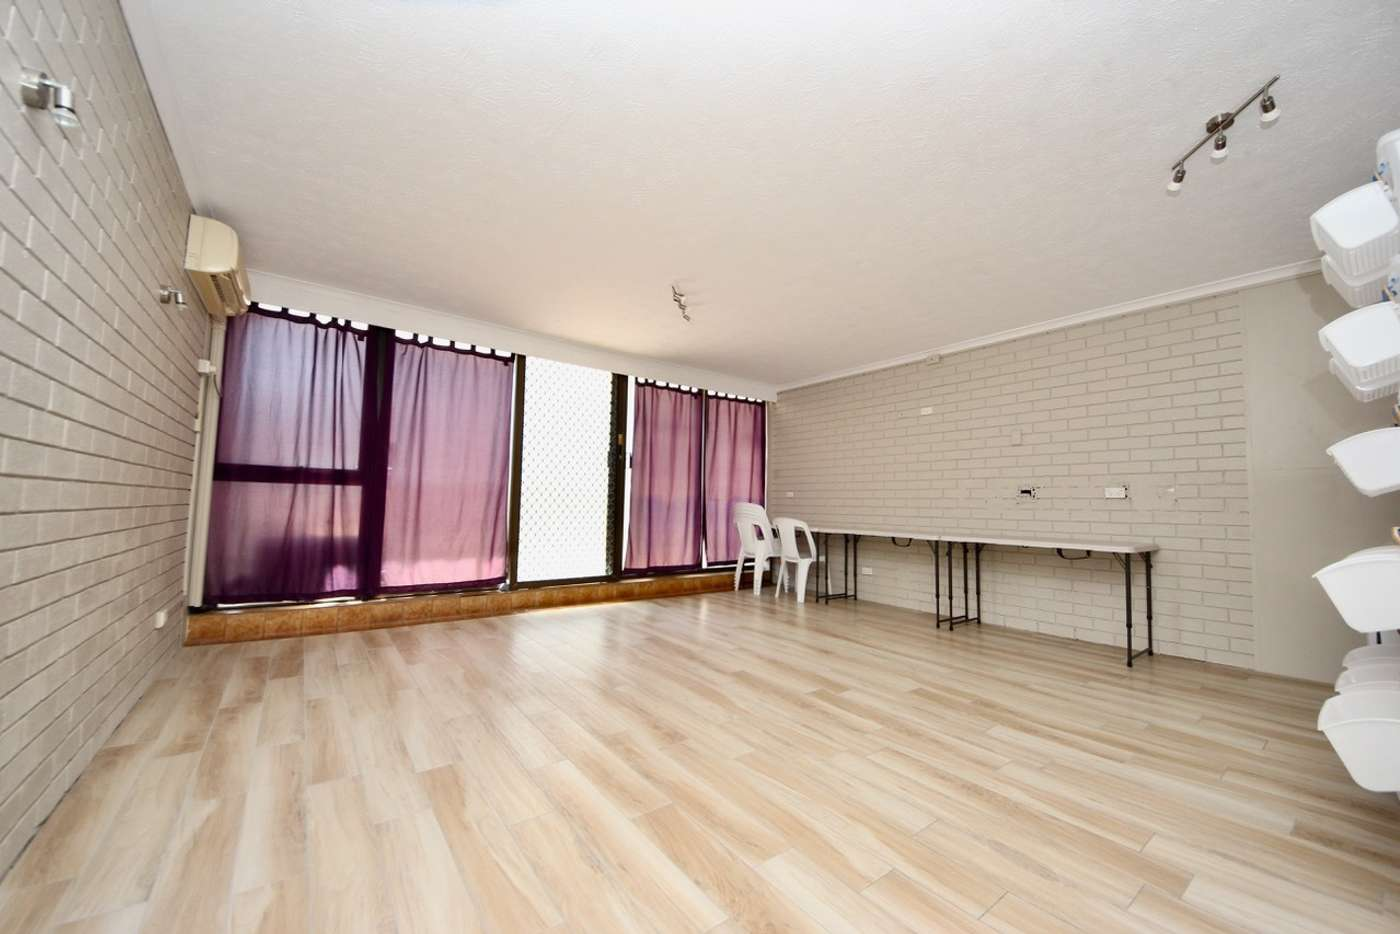 Main view of Homely unit listing, 102/40 Surf Parade, Broadbeach QLD 4218